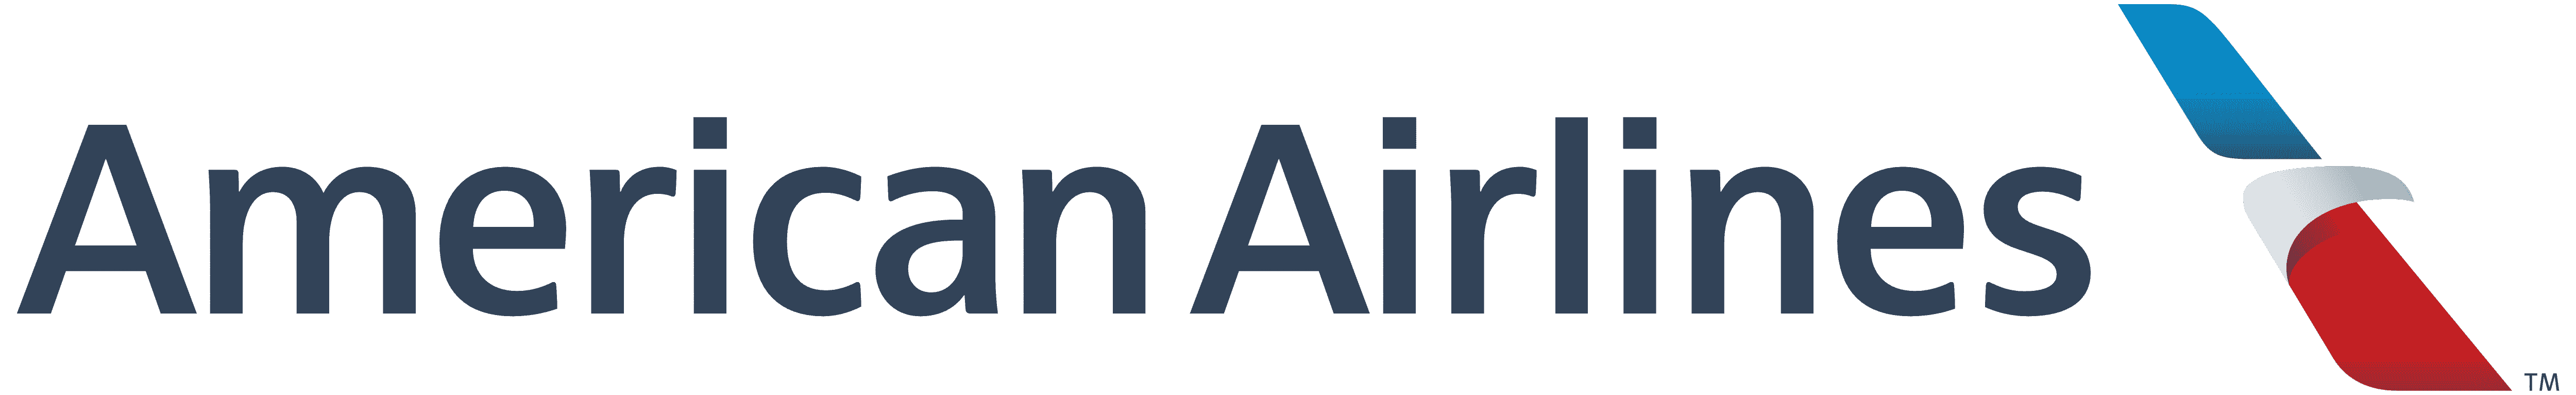 American_Airlines_logo-min